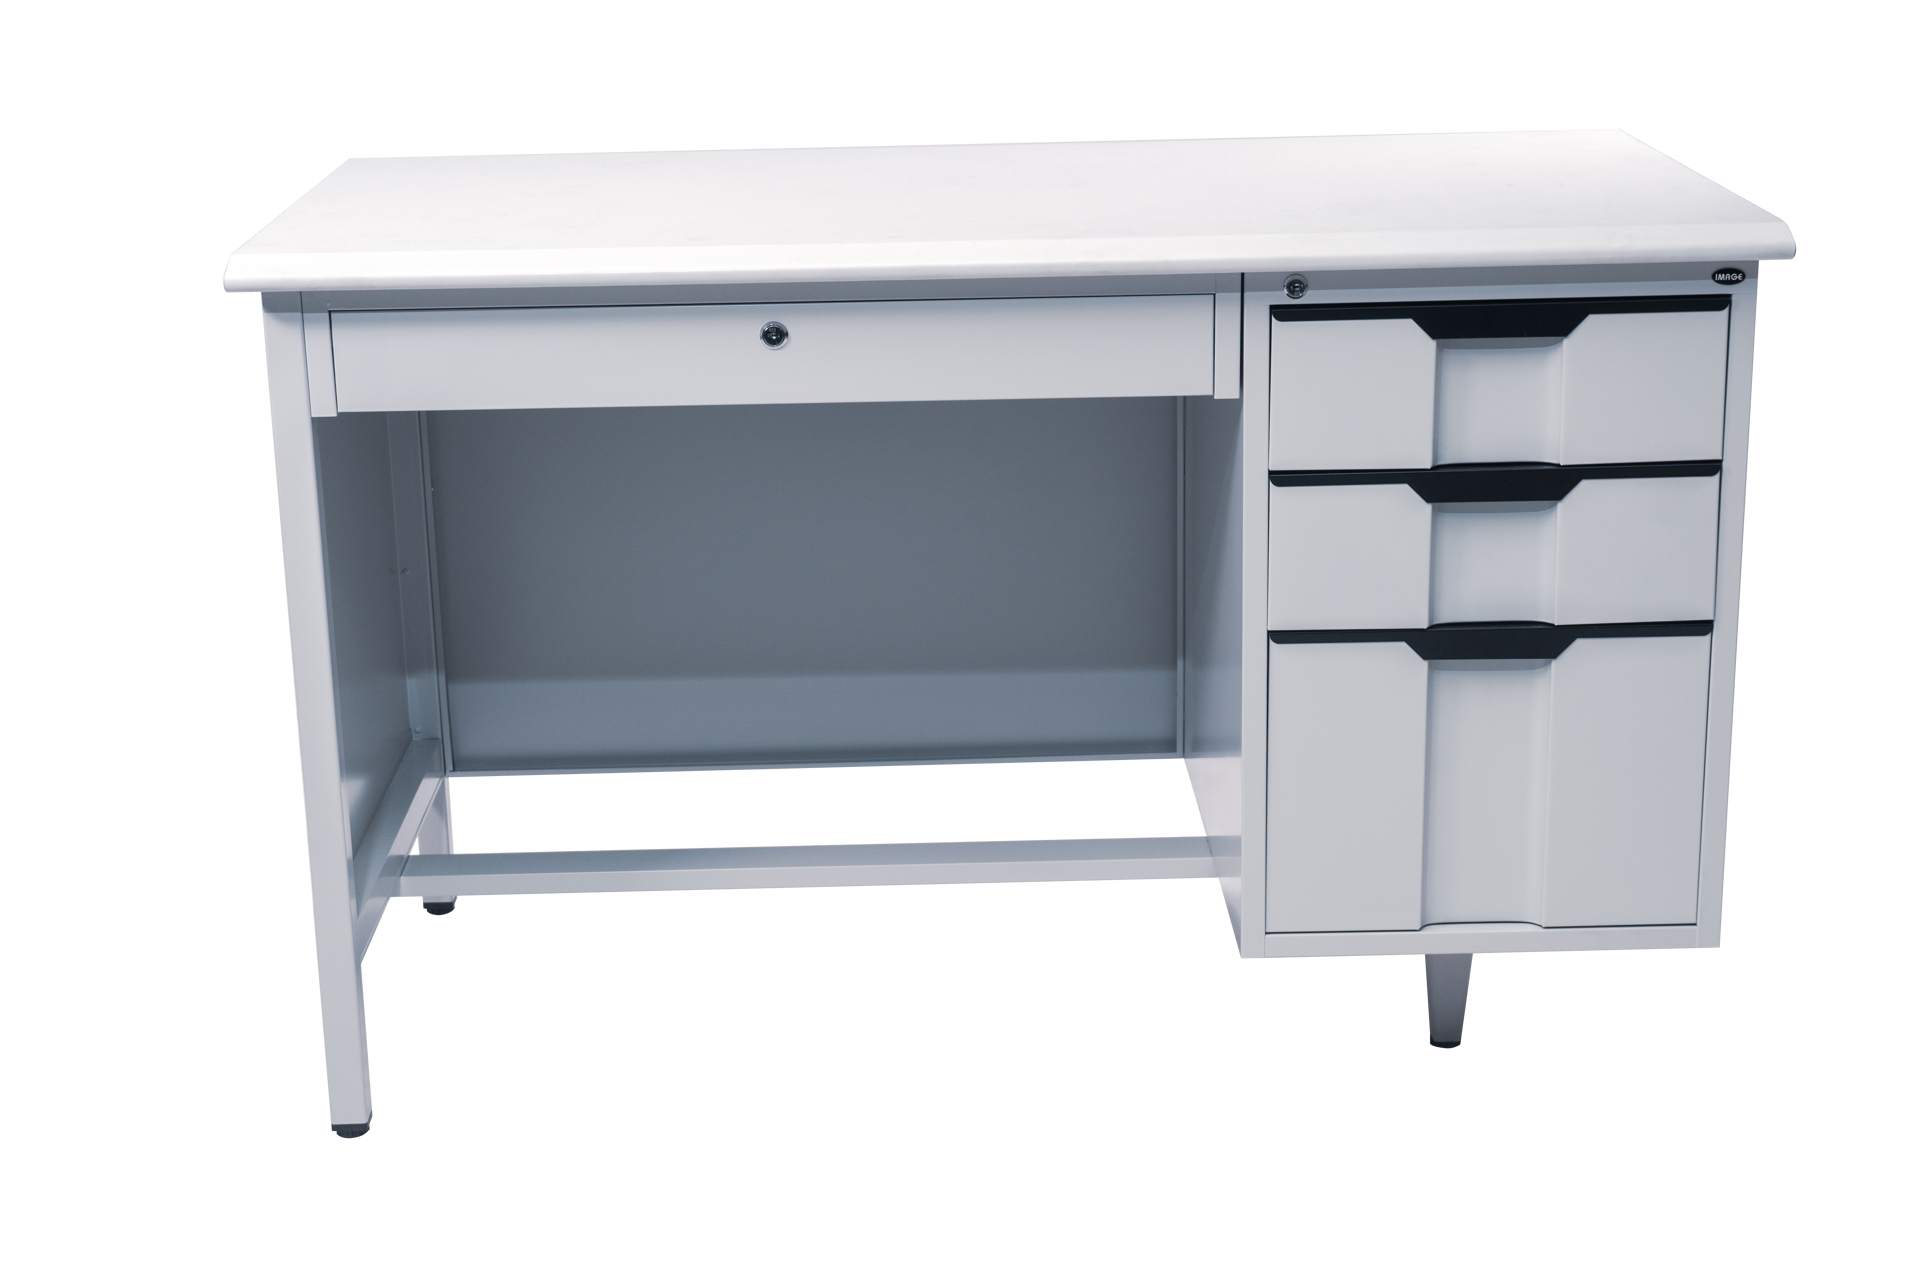 Picture of AD-1200GY Image 1200 x 600 Metal Desk w/Single Pedestal - Grey